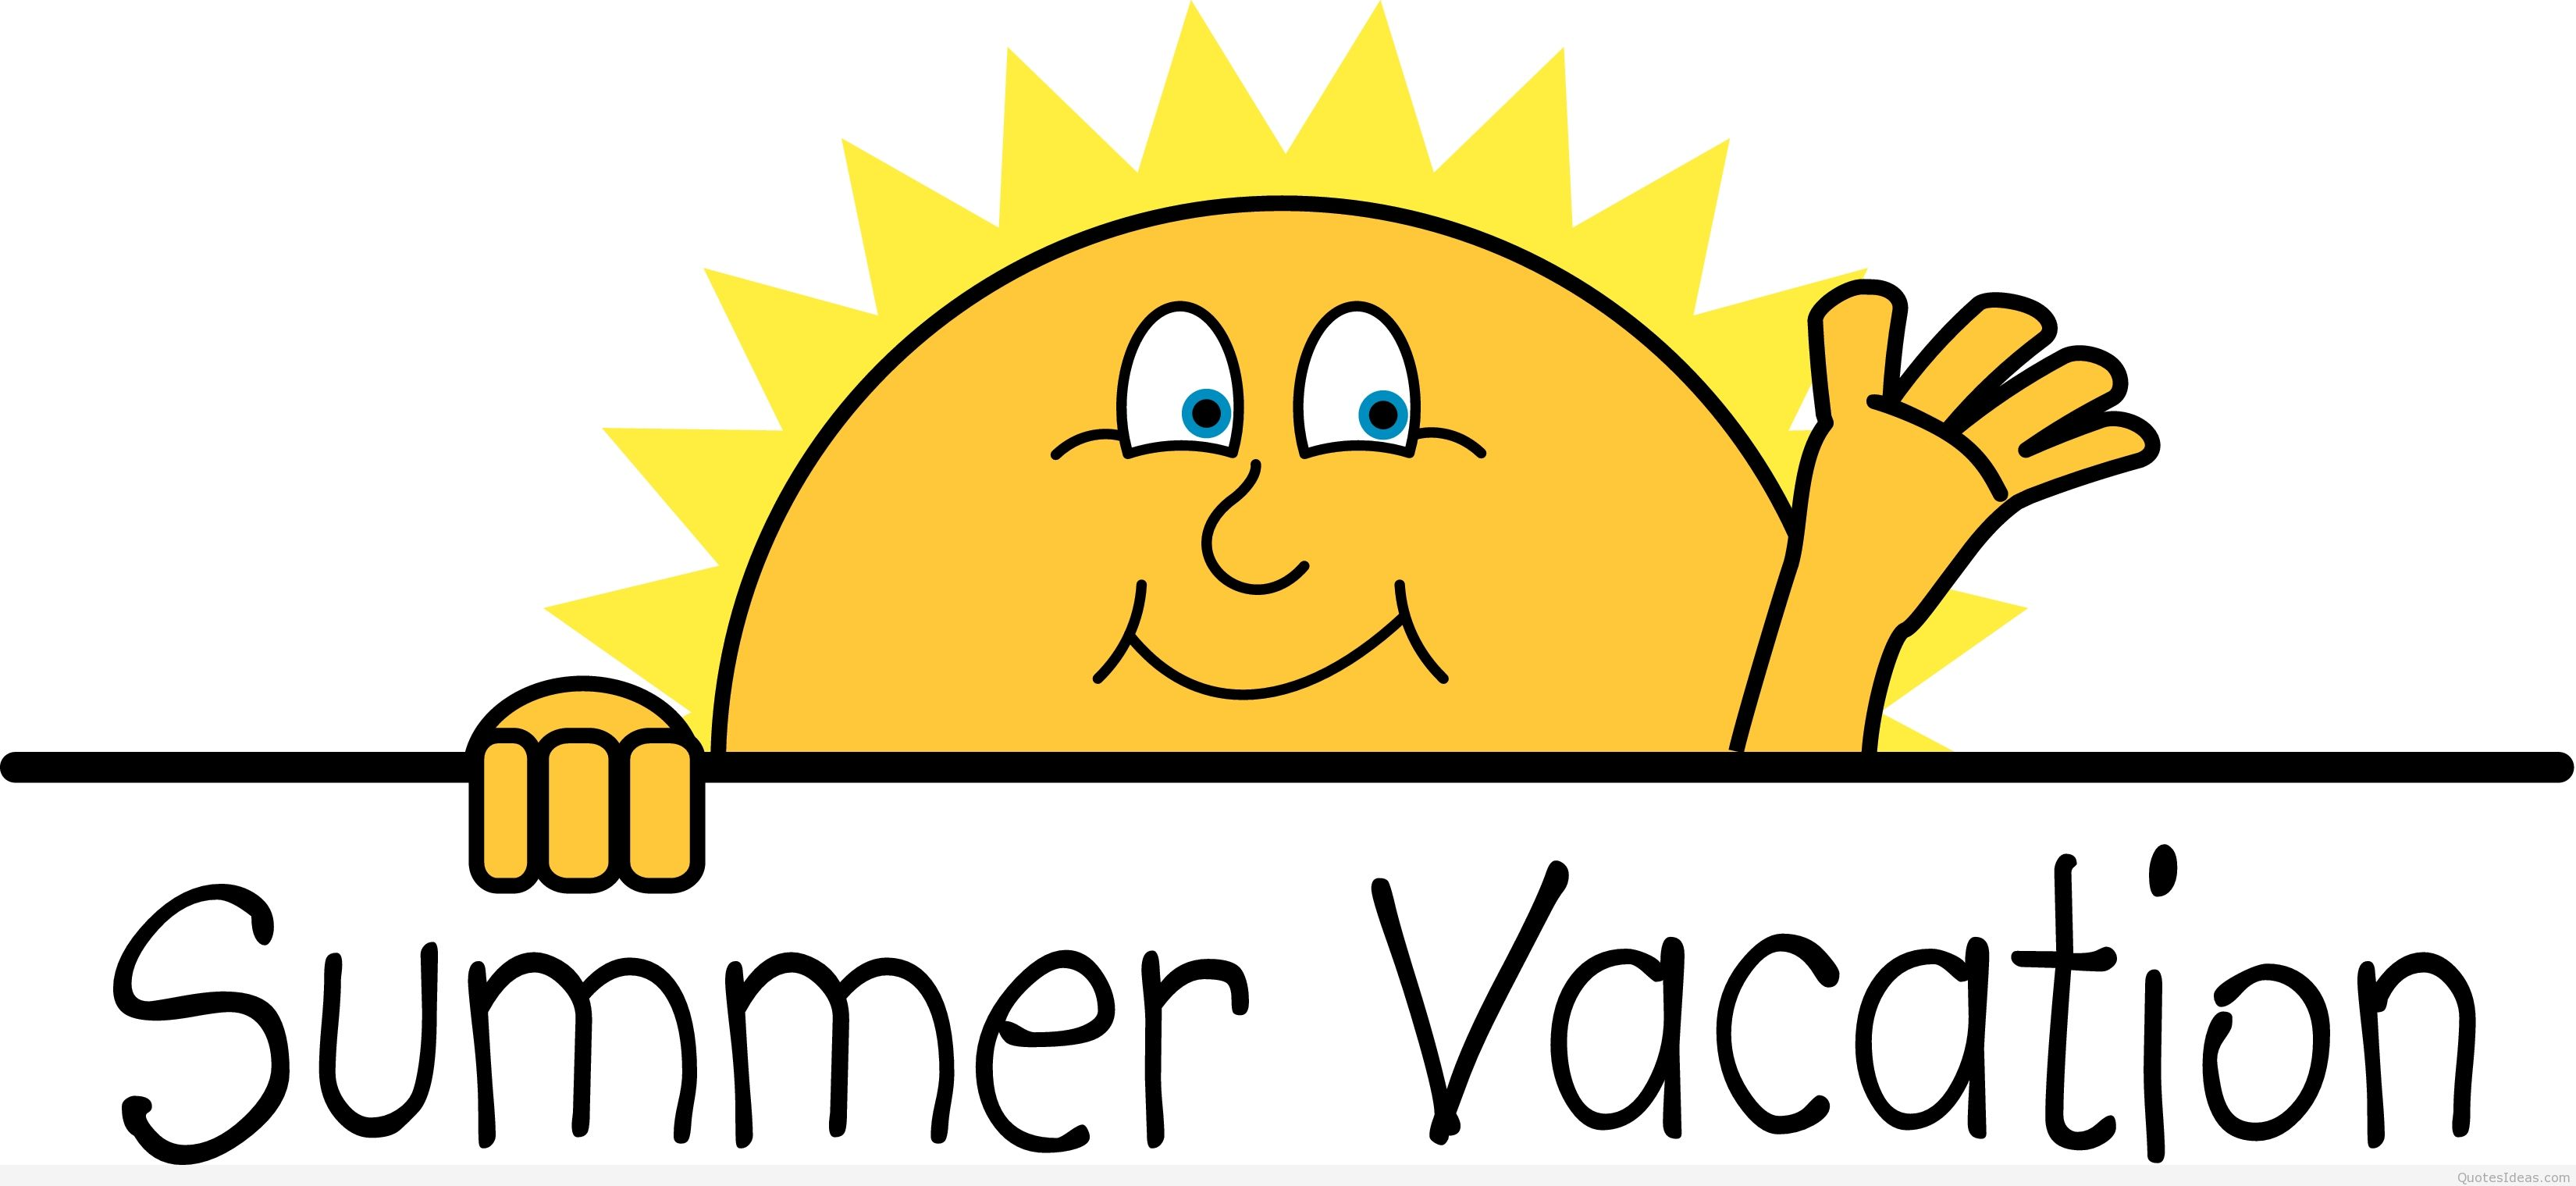 Last of school free. Happiness clipart summer day